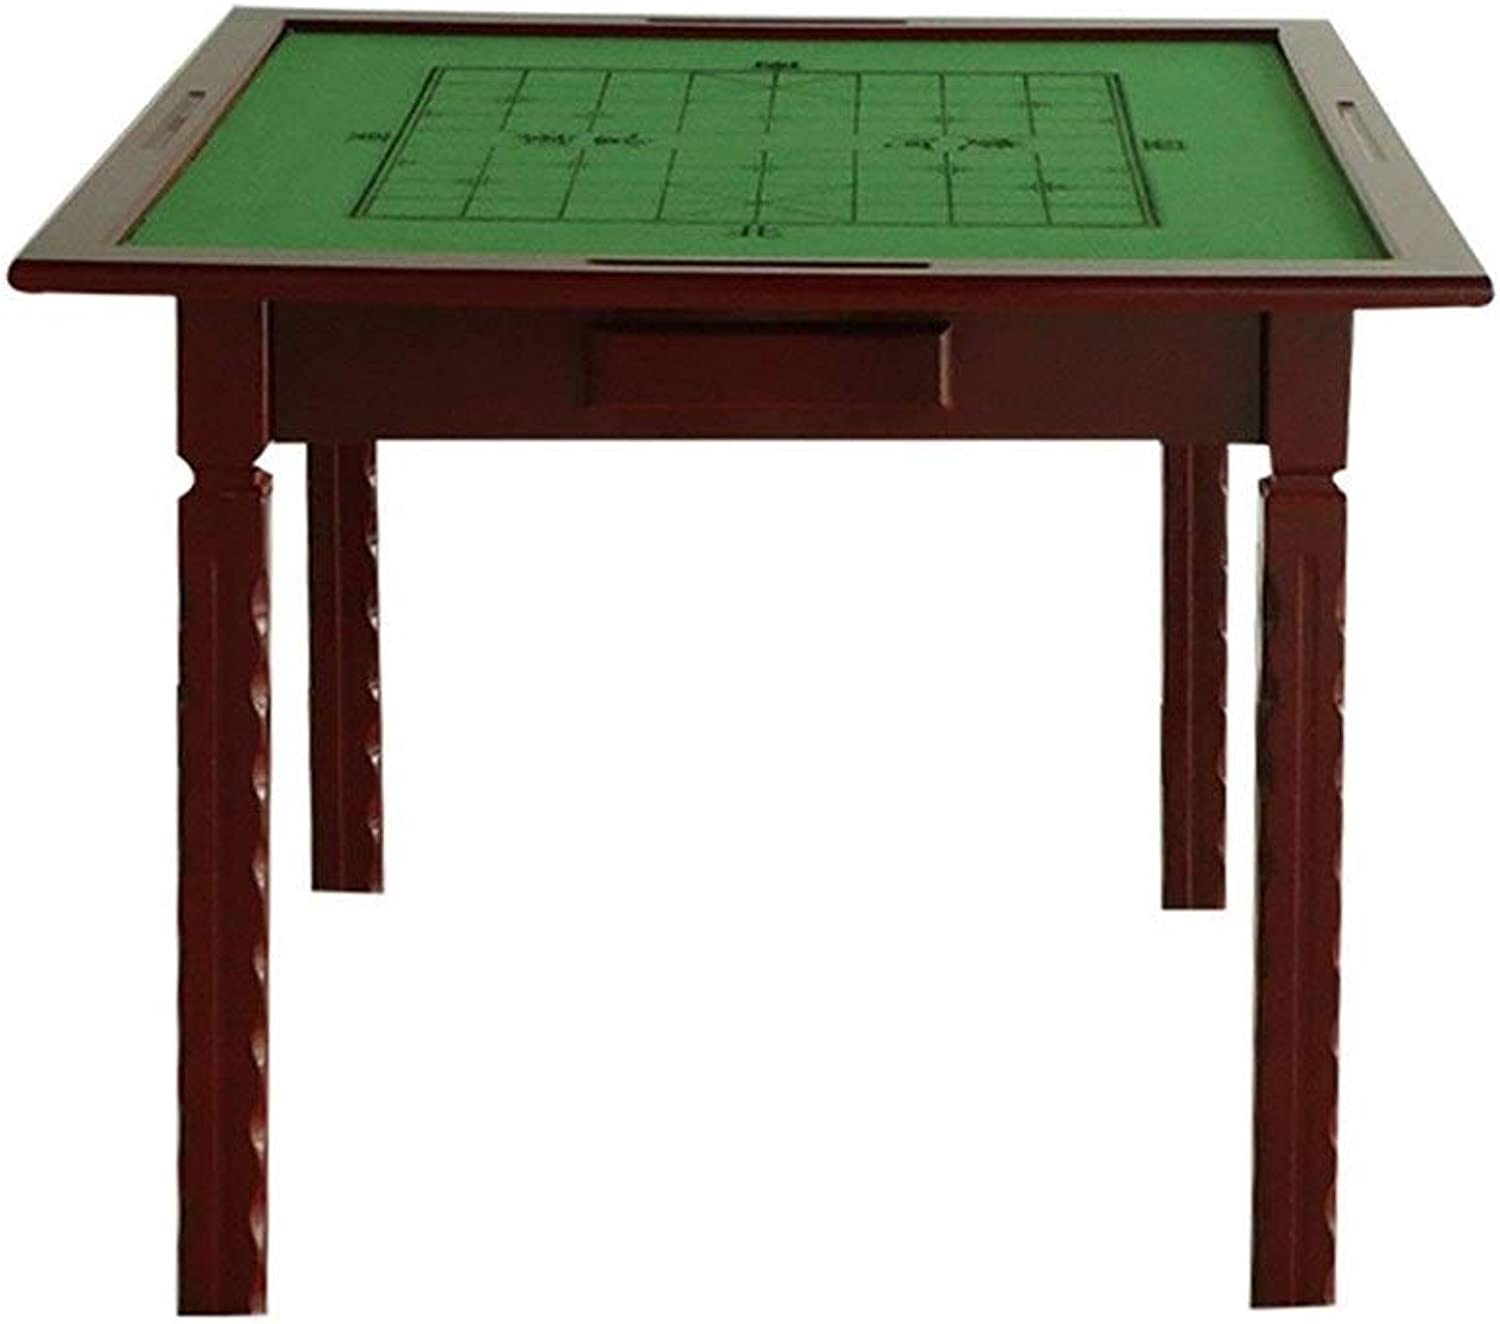 NuoEn Wooden Mahjong Table Board Games Tile Games,Dominoes,Poker Table85 X 85cmFoldable Table Outdoor Table Chess Table Dining Table Square Table